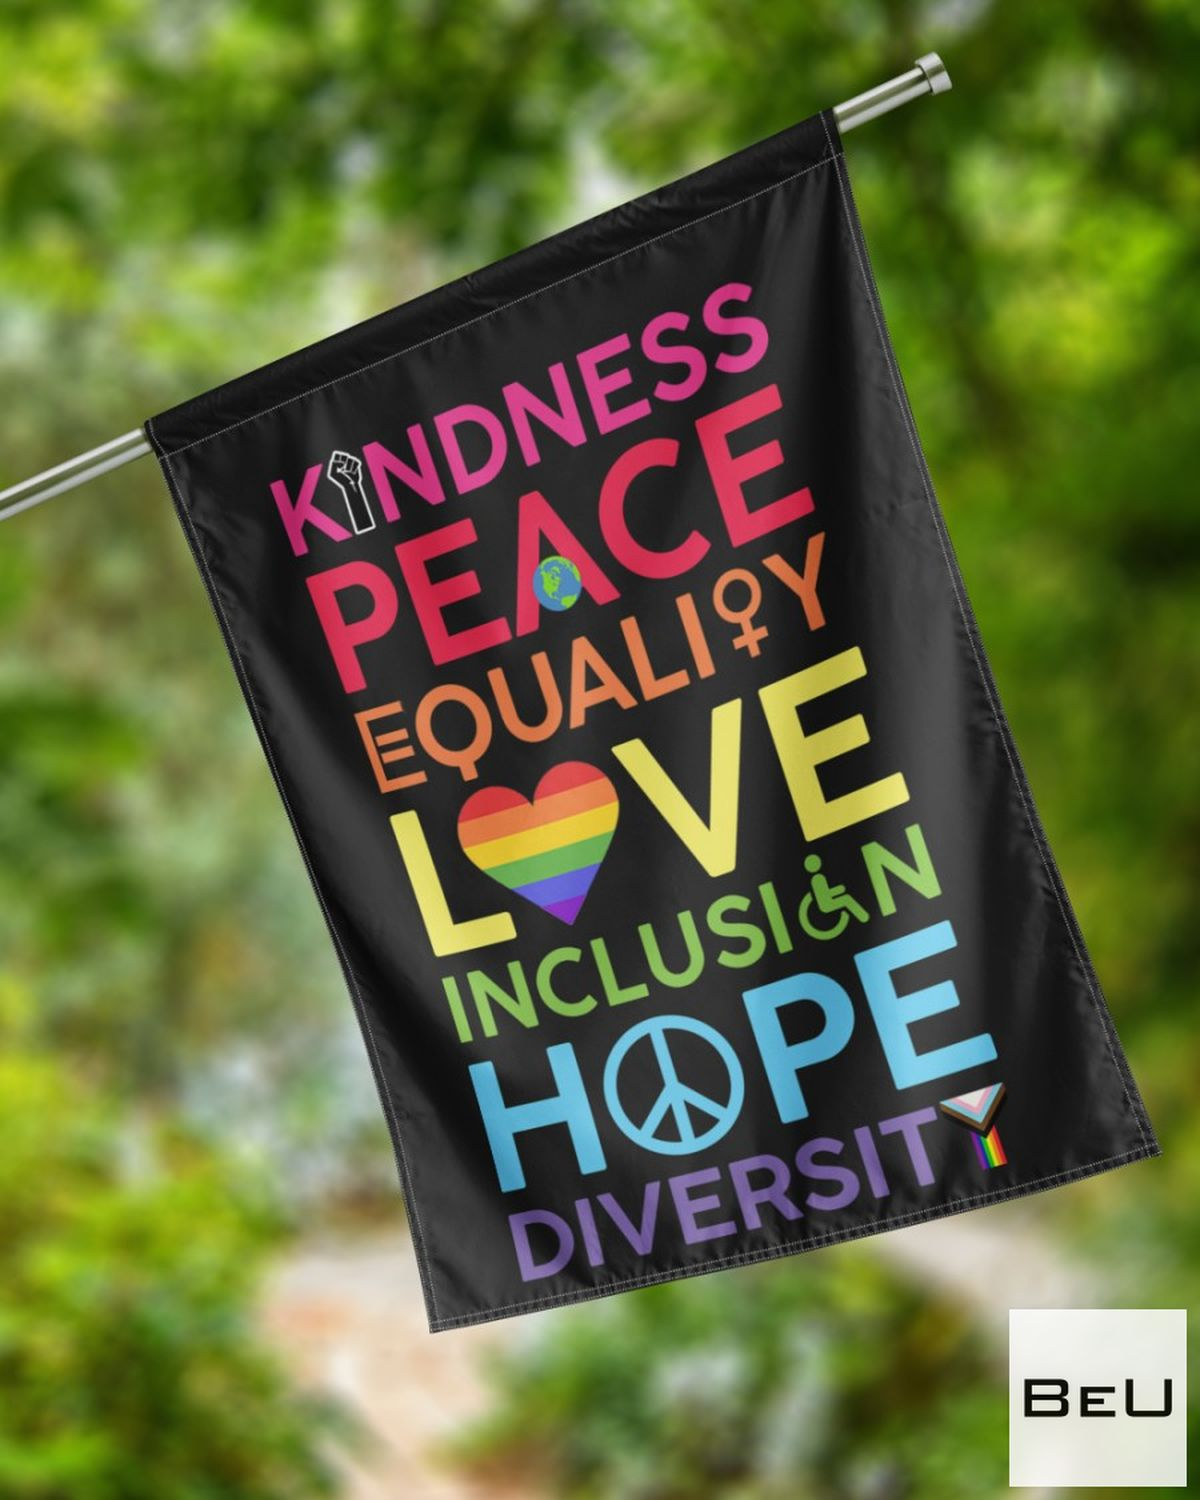 Kindness Peace Equality Love Inclusion Hope Diversity LGBT House Flag